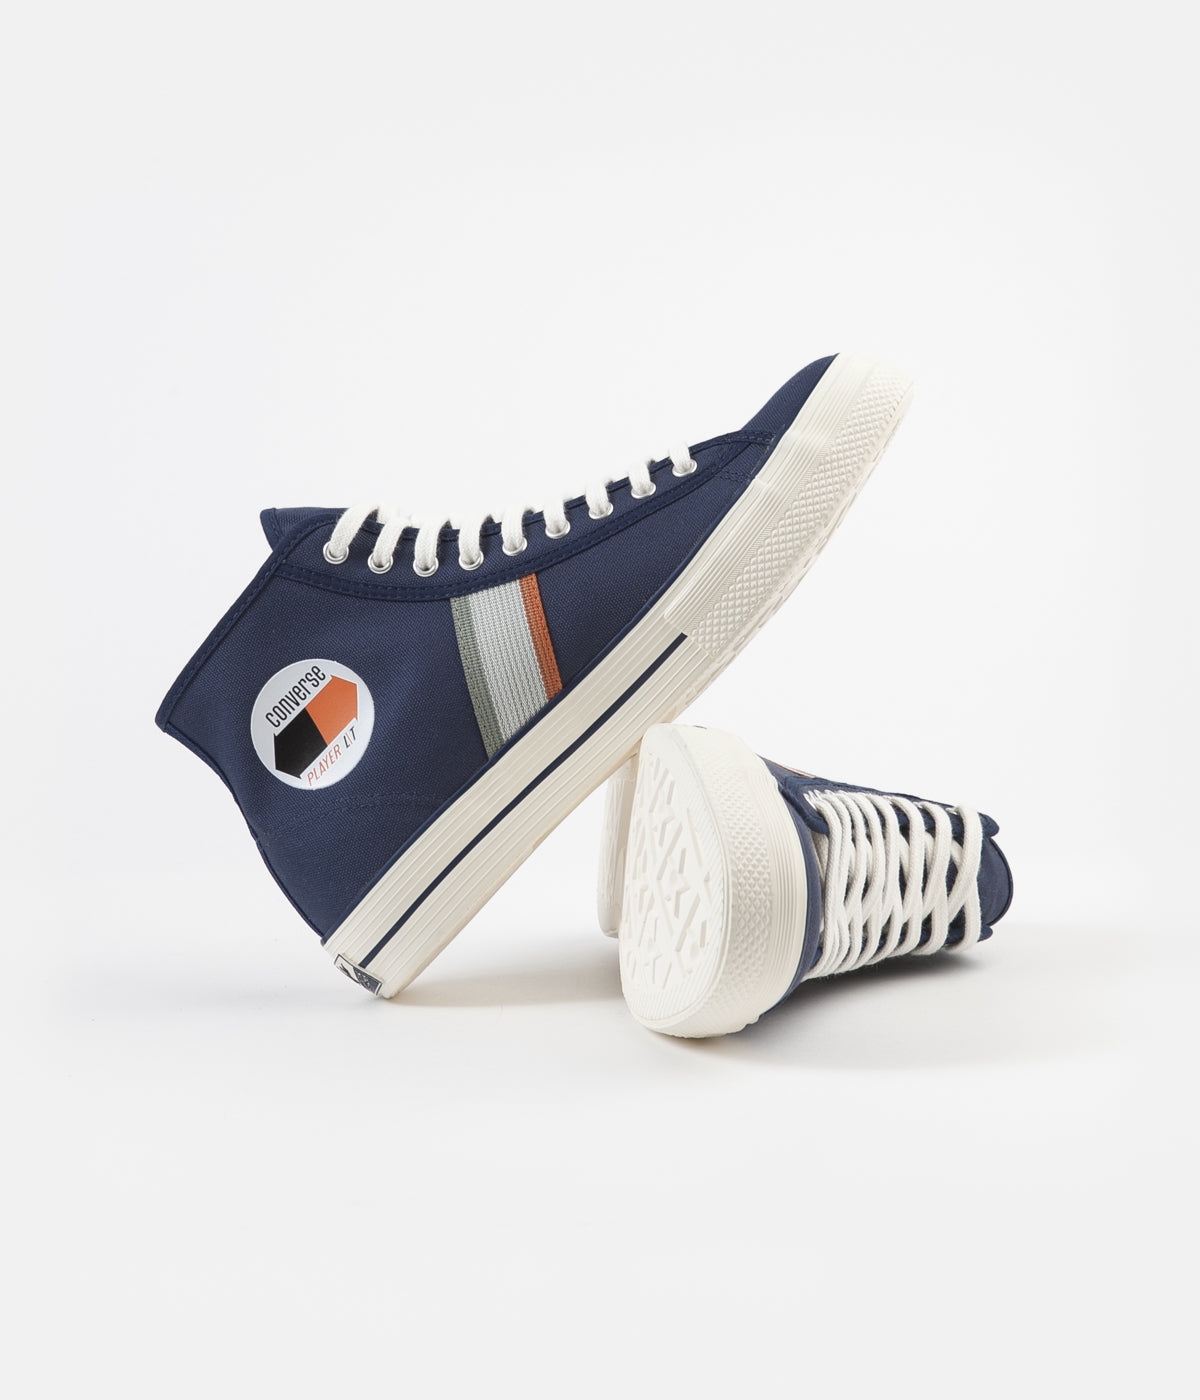 Converse Player LT Hi Shoes - Navy / Jade Stone / Egret